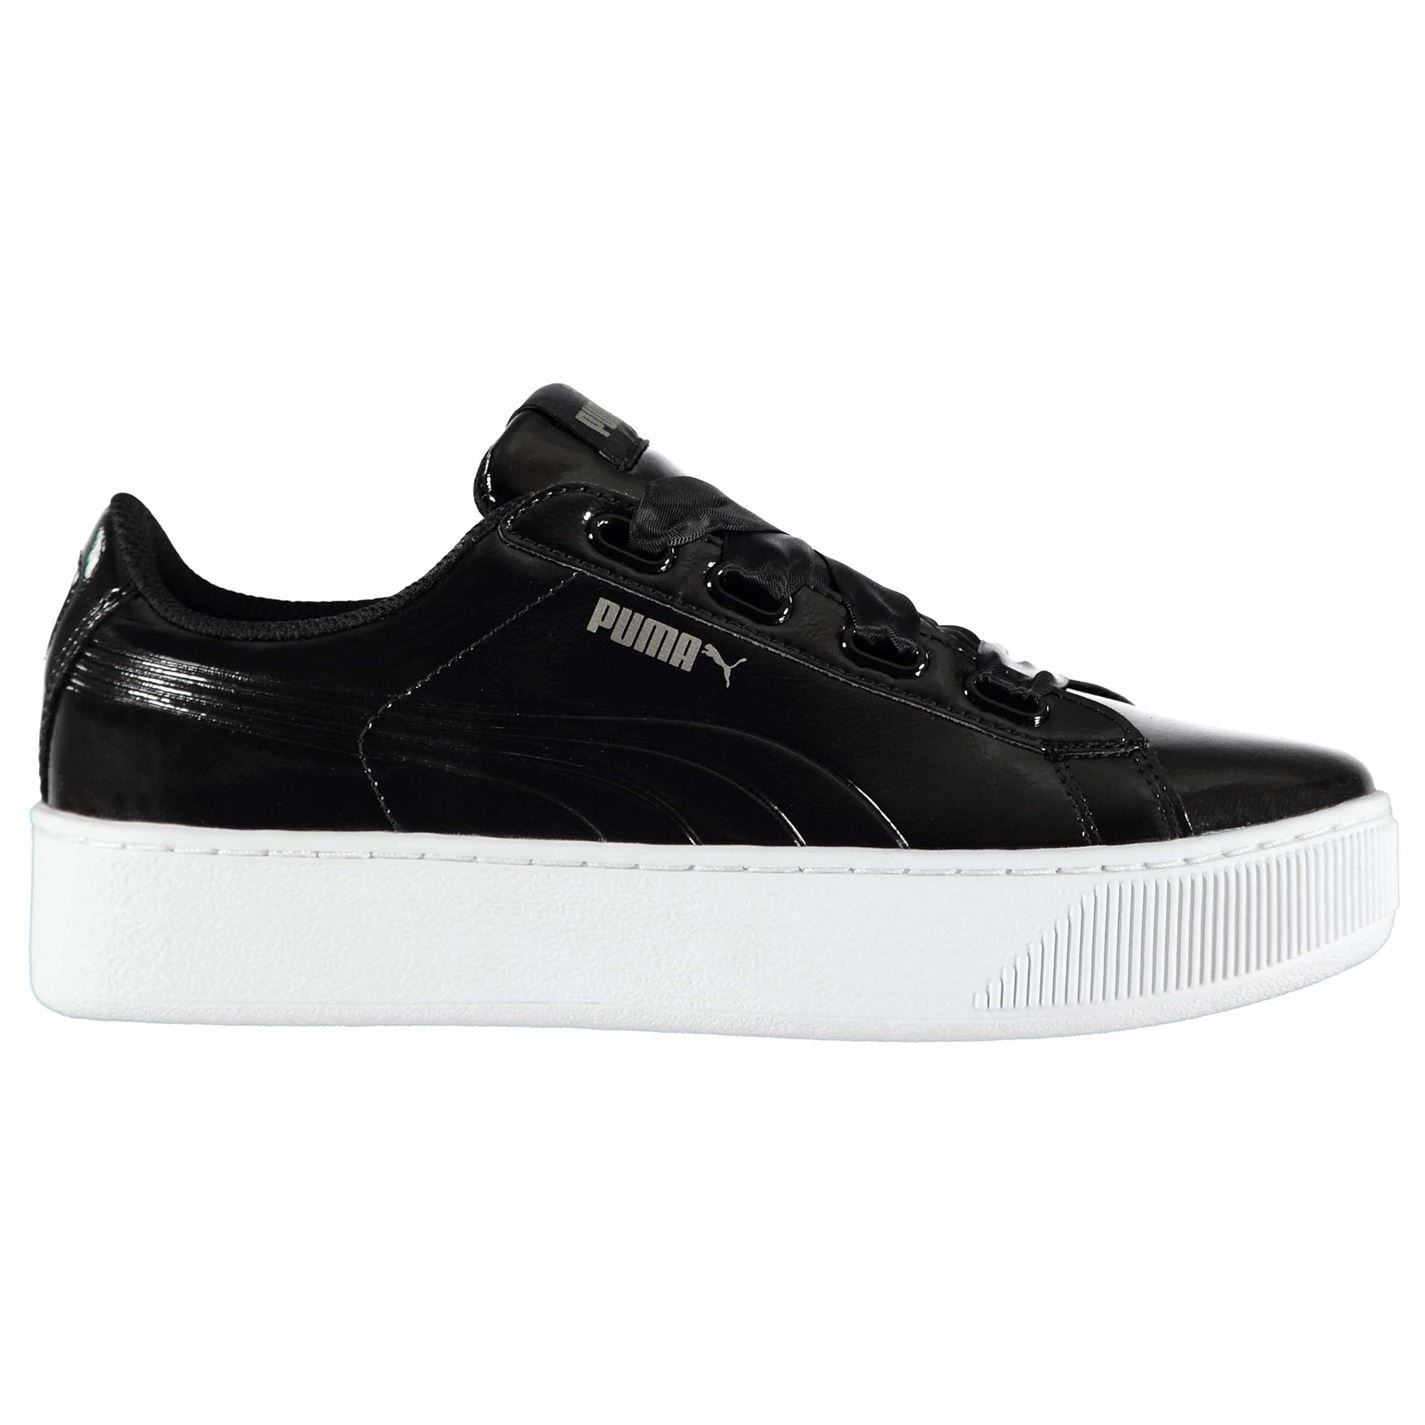 Details about Puma vikky women ribbon lace platforms leather low sneakers 364979 03 m13 show original title